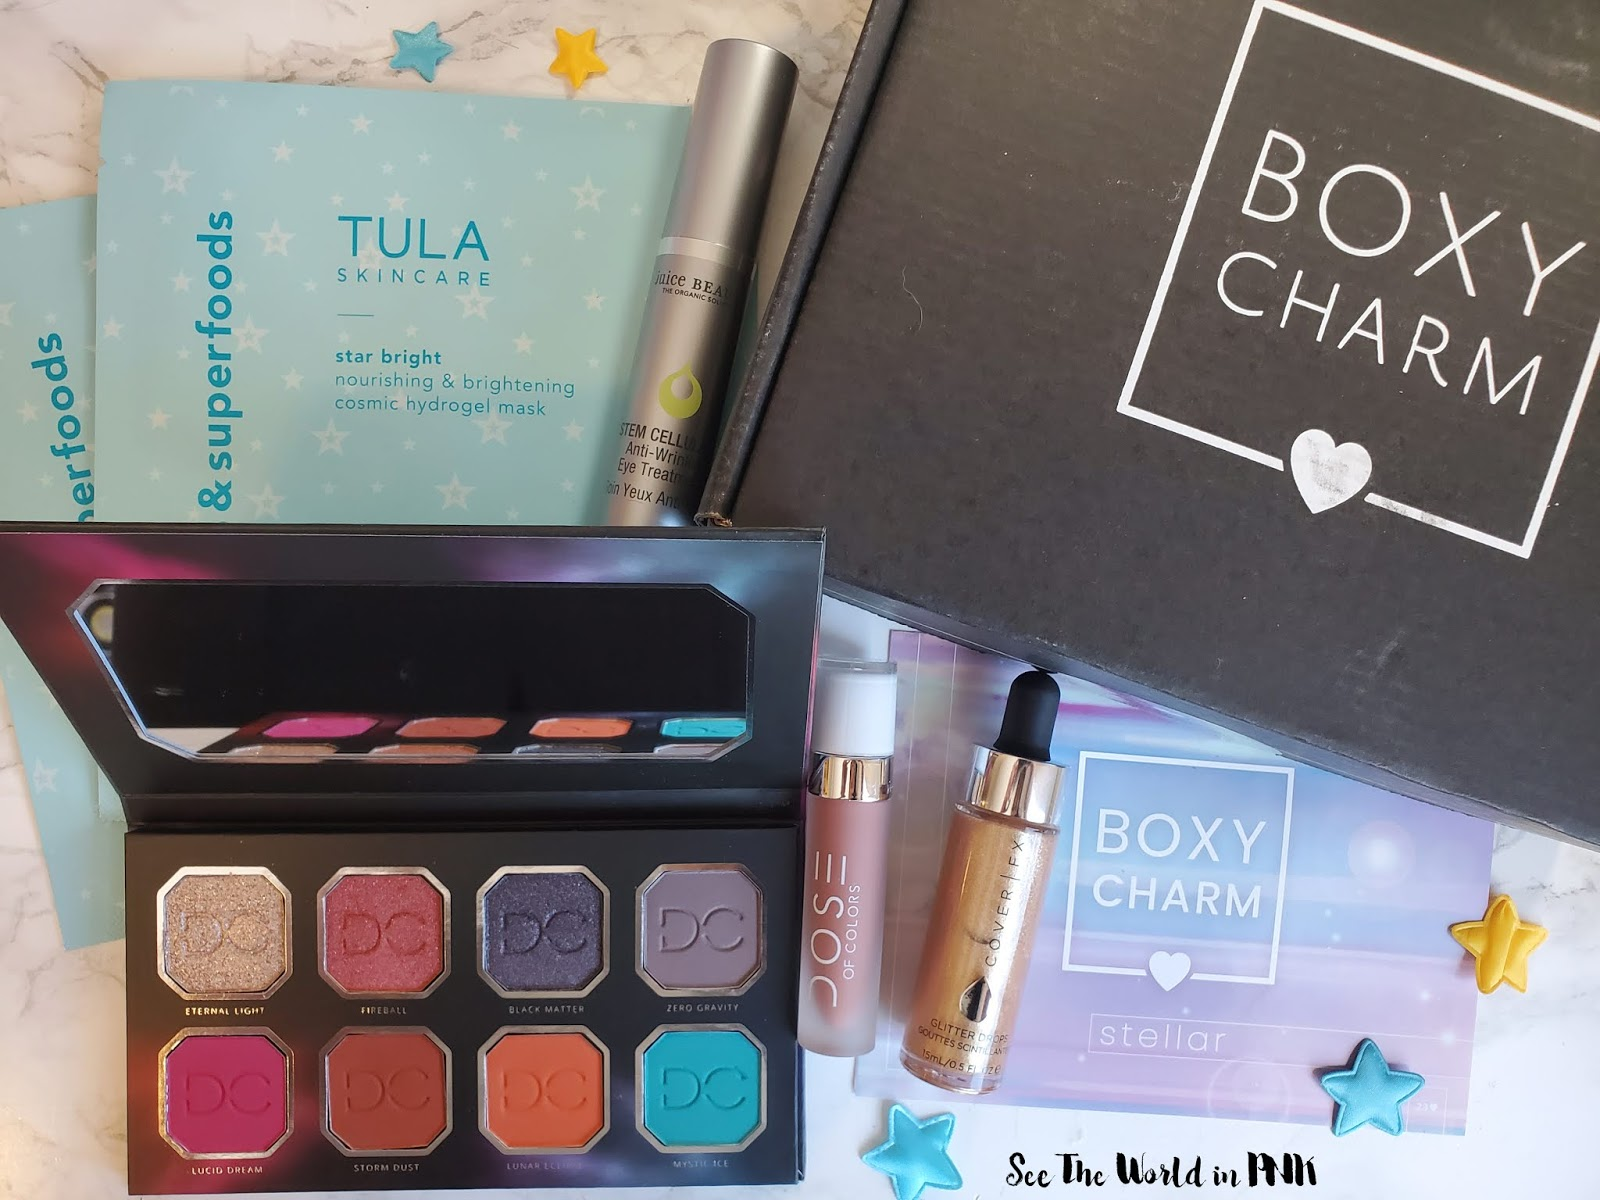 November 2019 Boxycharm - Unboxing, Swatches, Review, and Full Make-up Look!